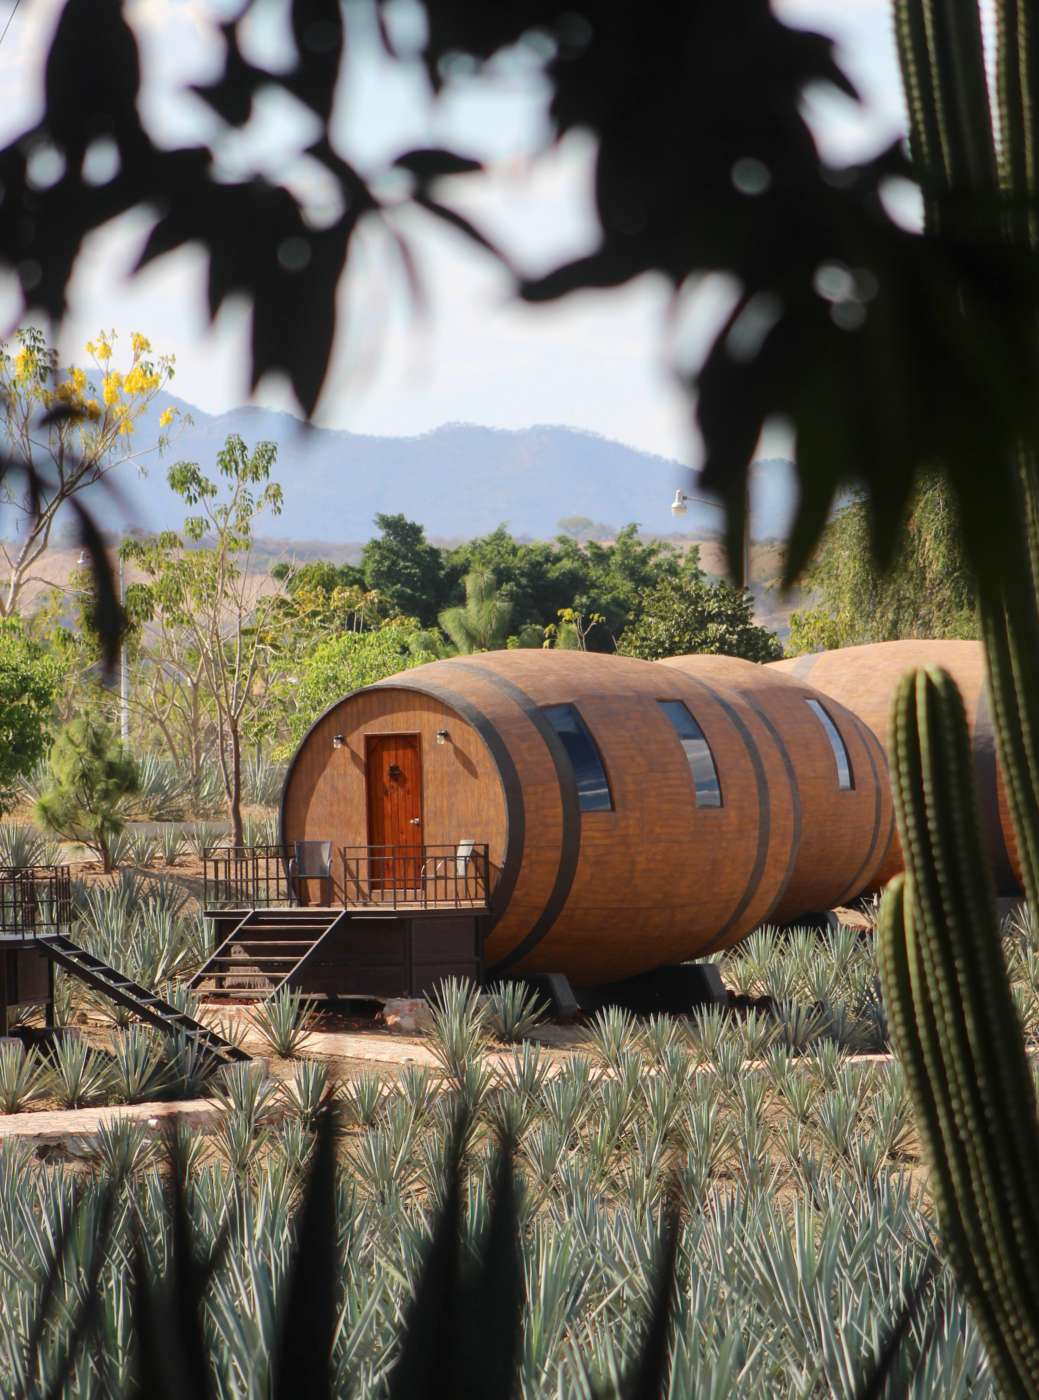 Sleeping In A Tequila Barrel Hotel Town Mexico Review